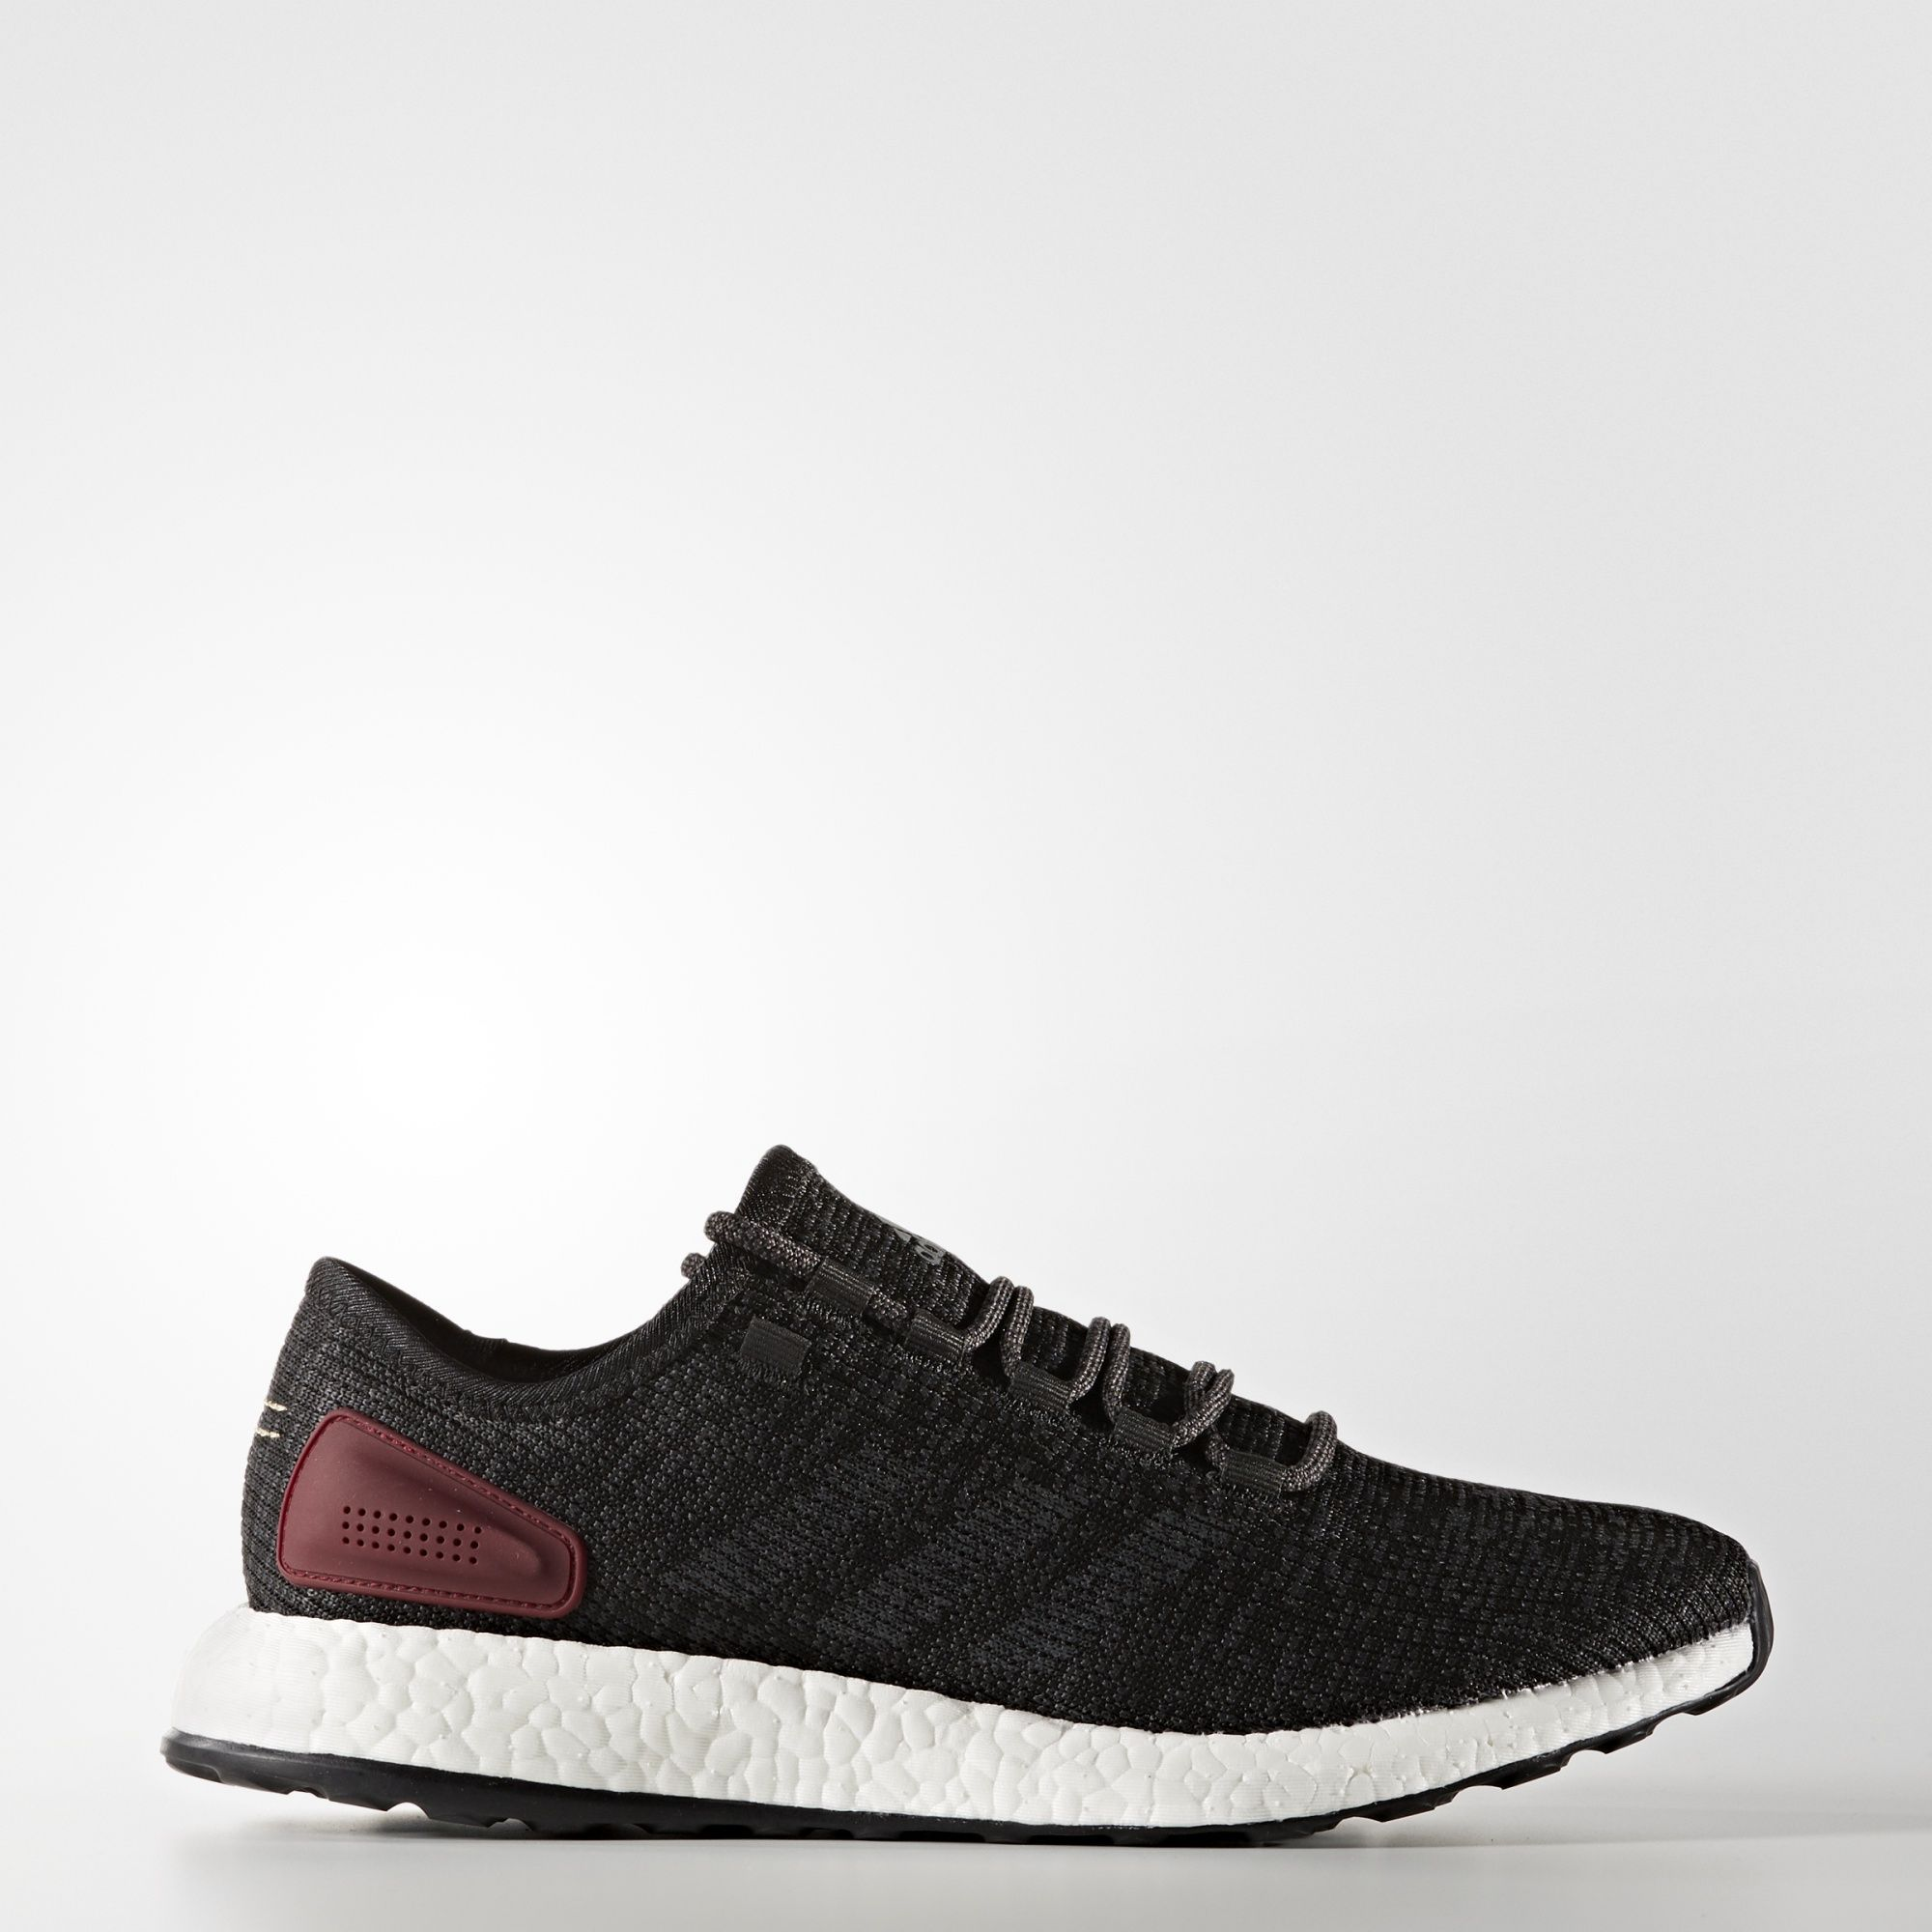 the 2017 adidas pure boost black burgundy is available now our